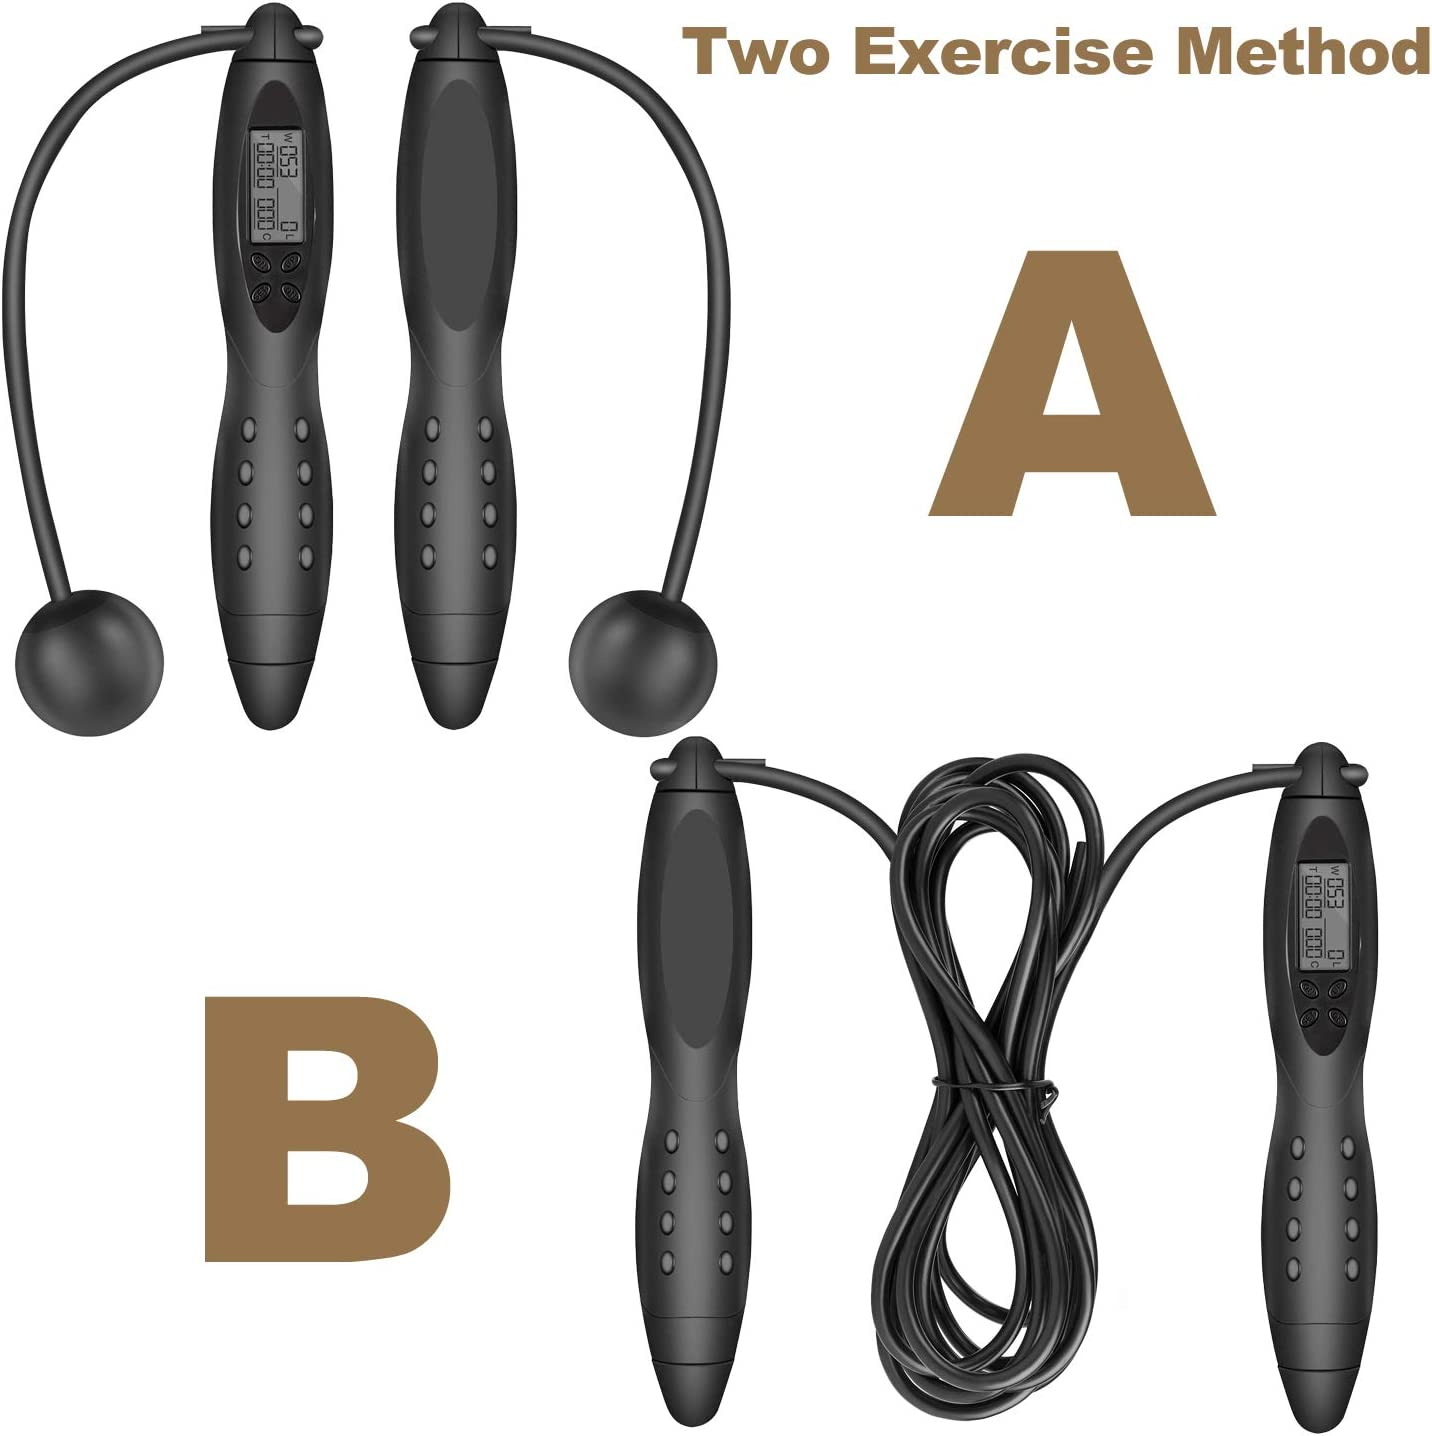 Adjustable Calorie Counter Jump Skipping Ropes Fitness Workouts Fat Burning Exercises Boxing Speed Jump Rope Tangle-free Adjustable Rope /& Digital Jump Rope TOQIBO Skipping Rope